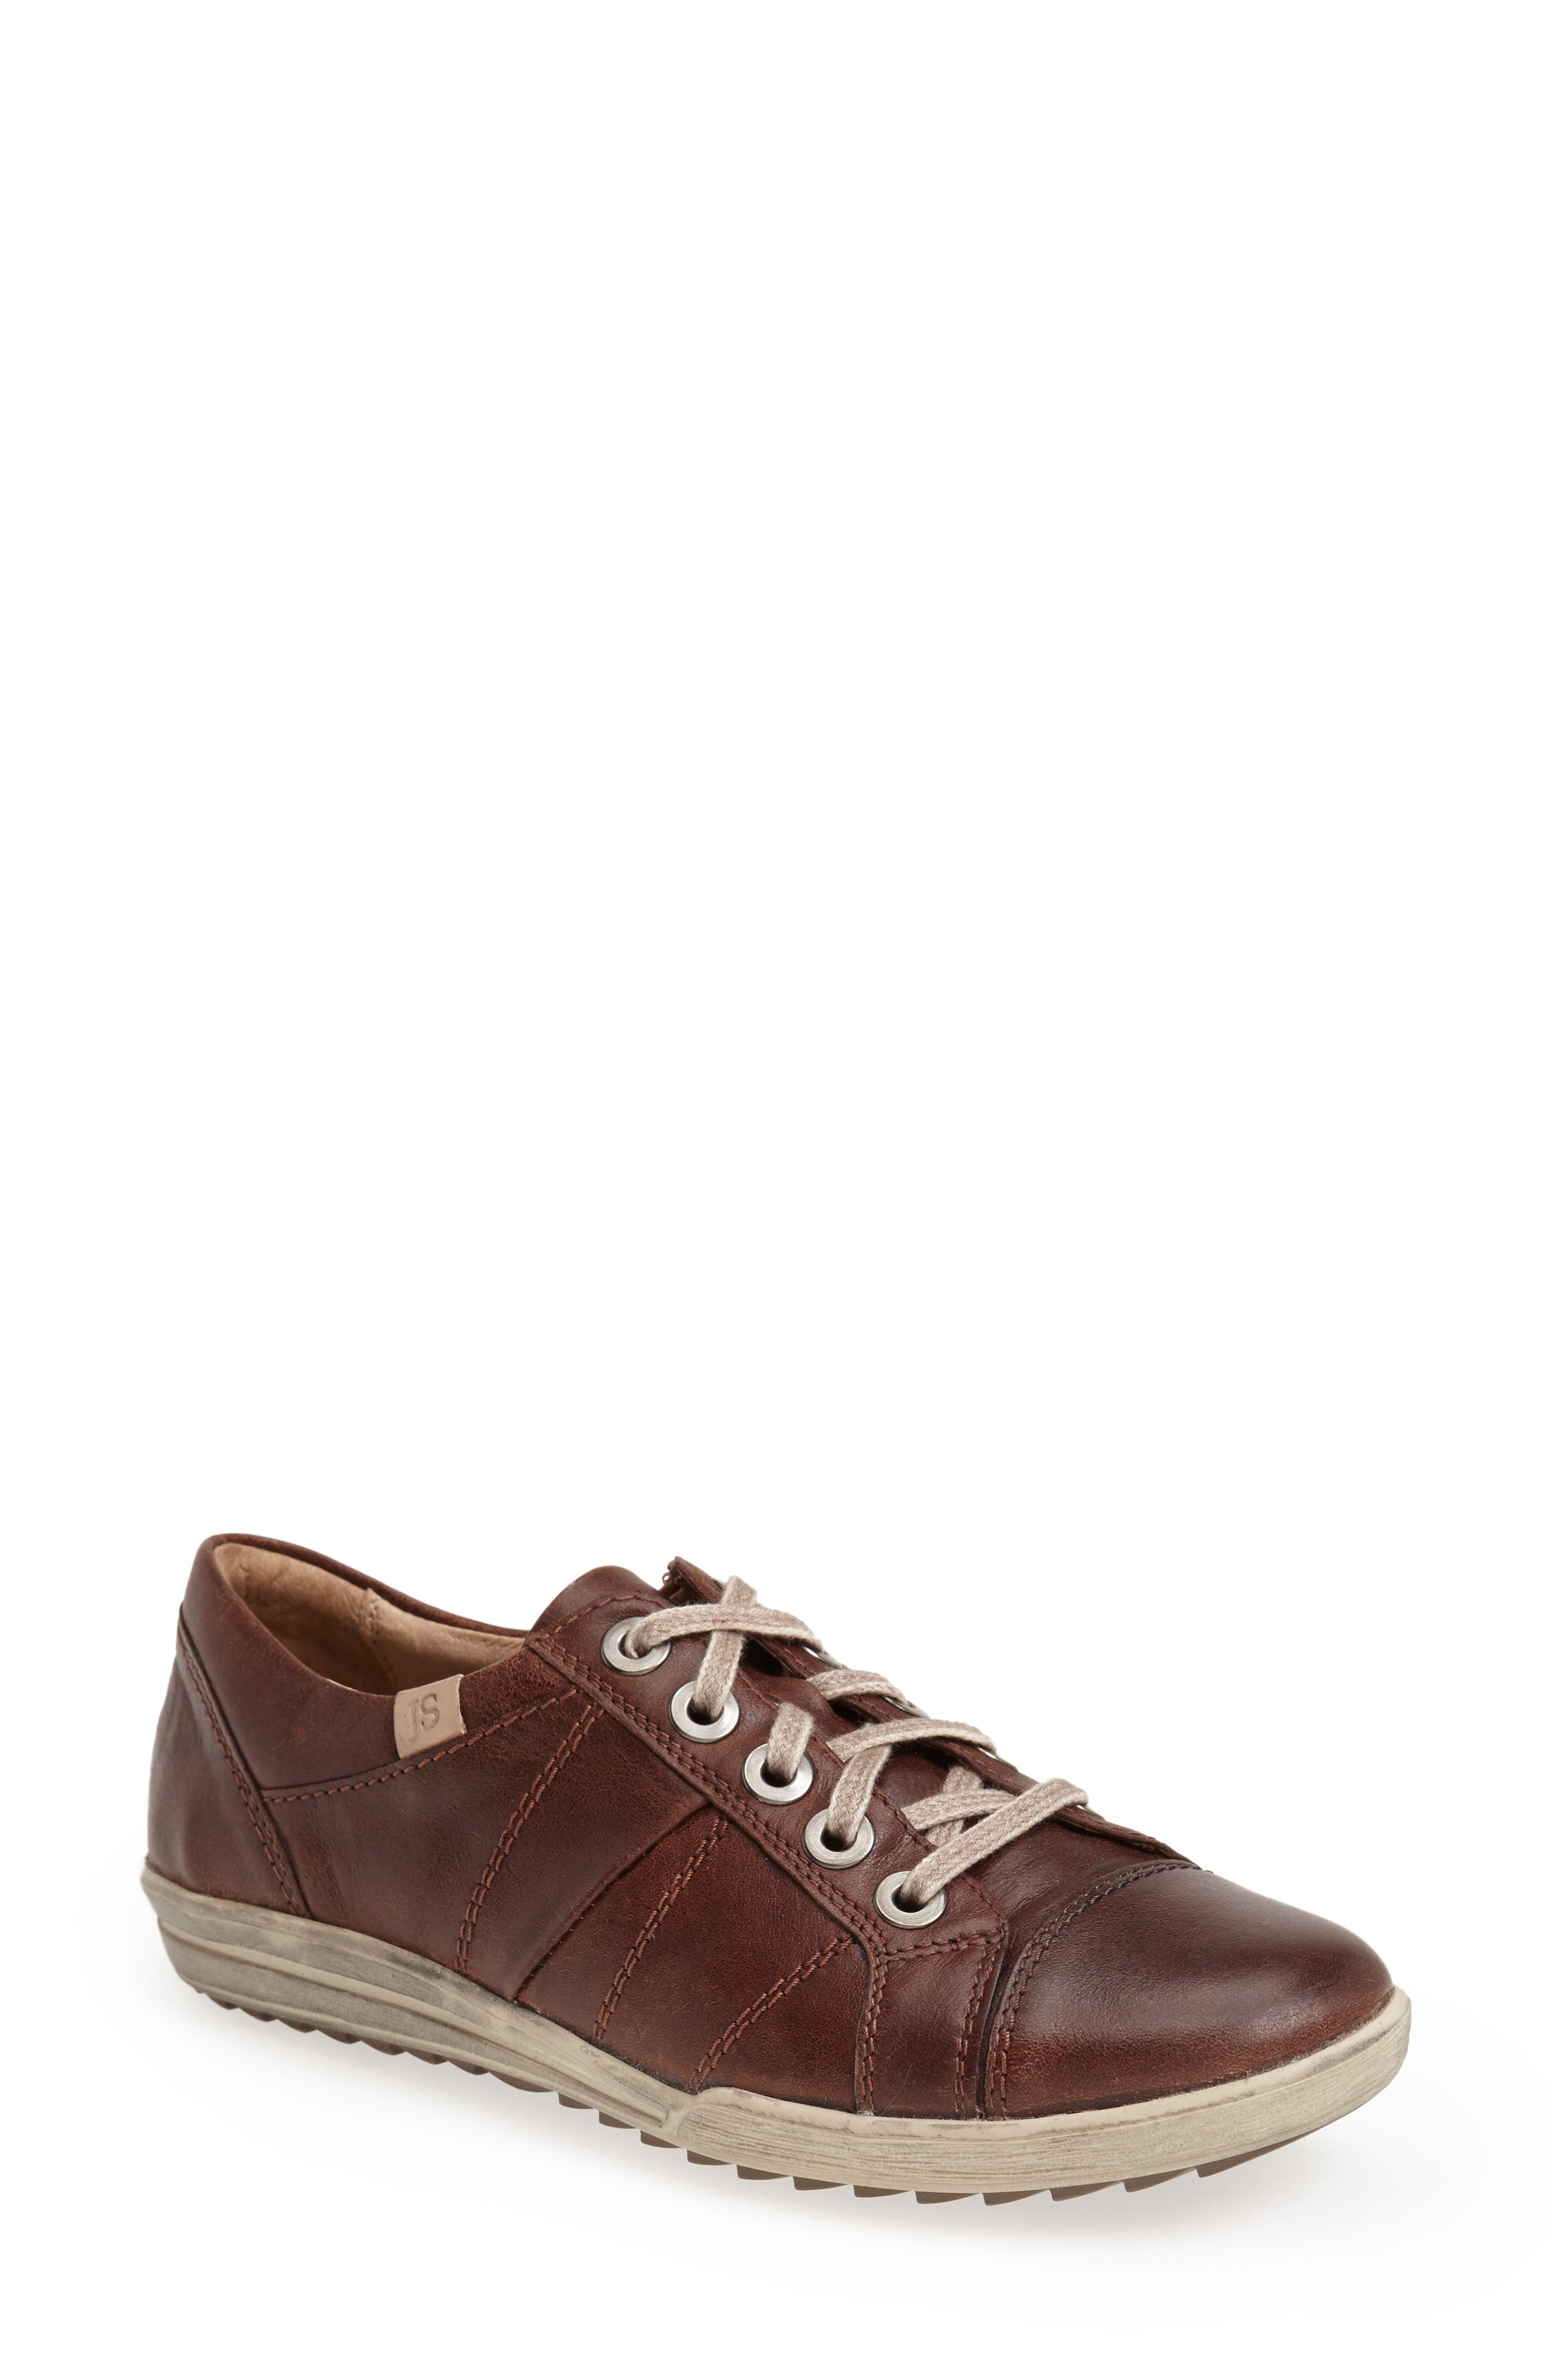 'Dany 05' Leather Sneaker,                             Alternate thumbnail 41, color,